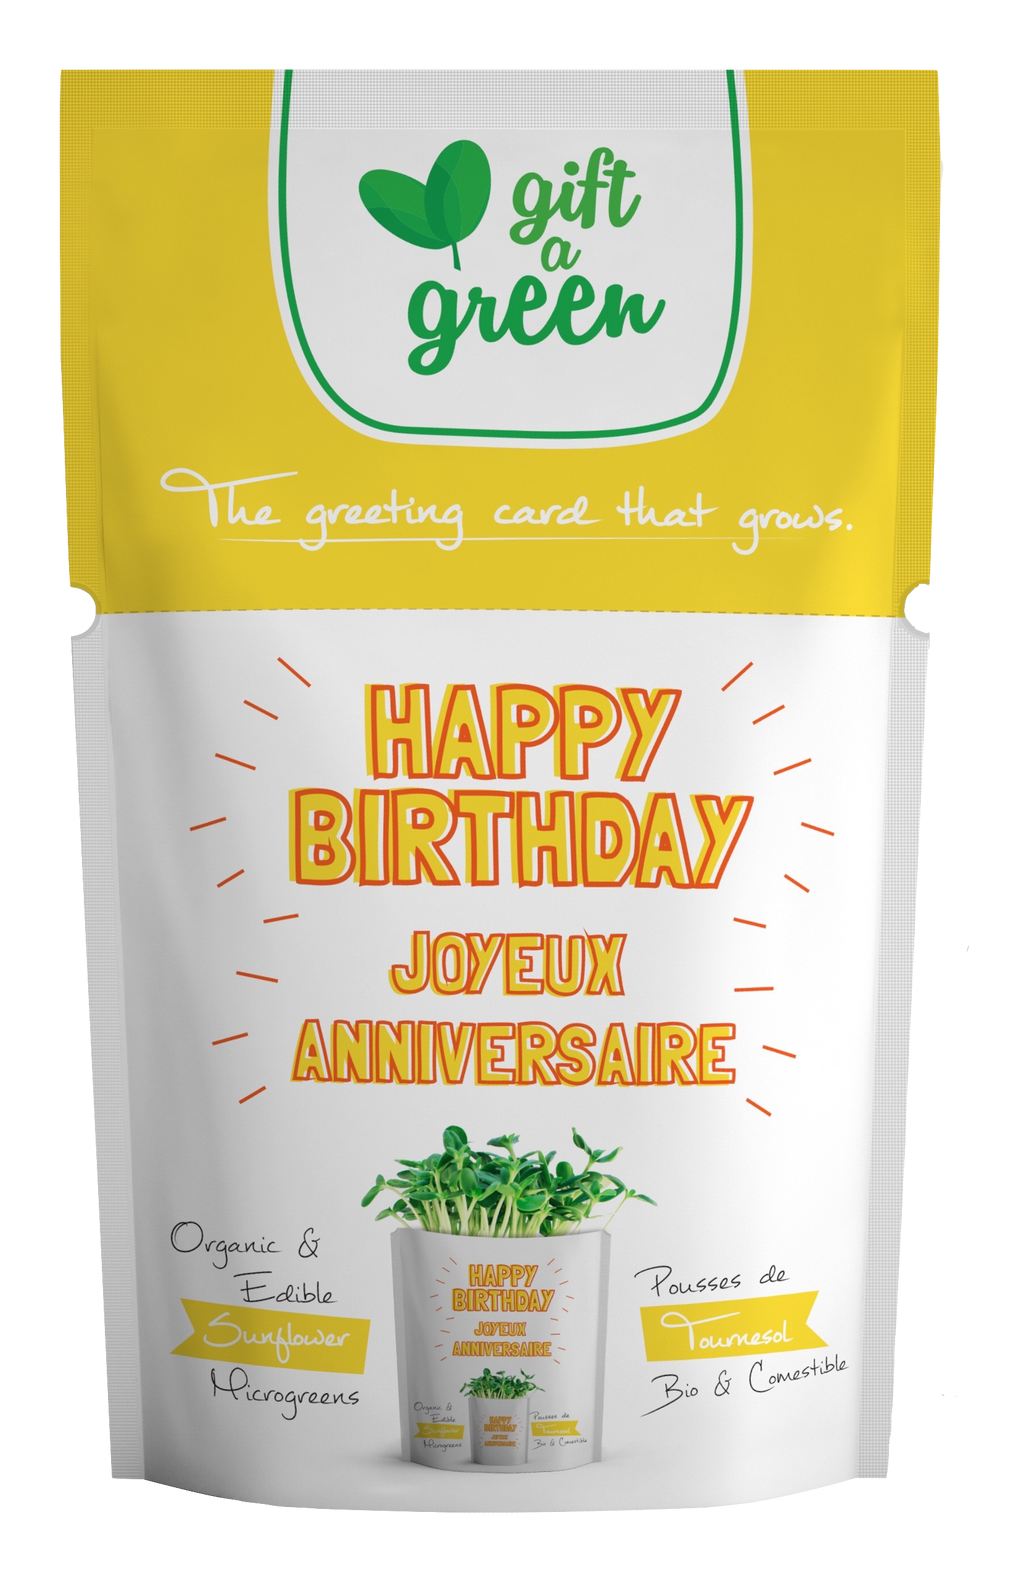 Sunflower Microgreens Happy Birthday Card